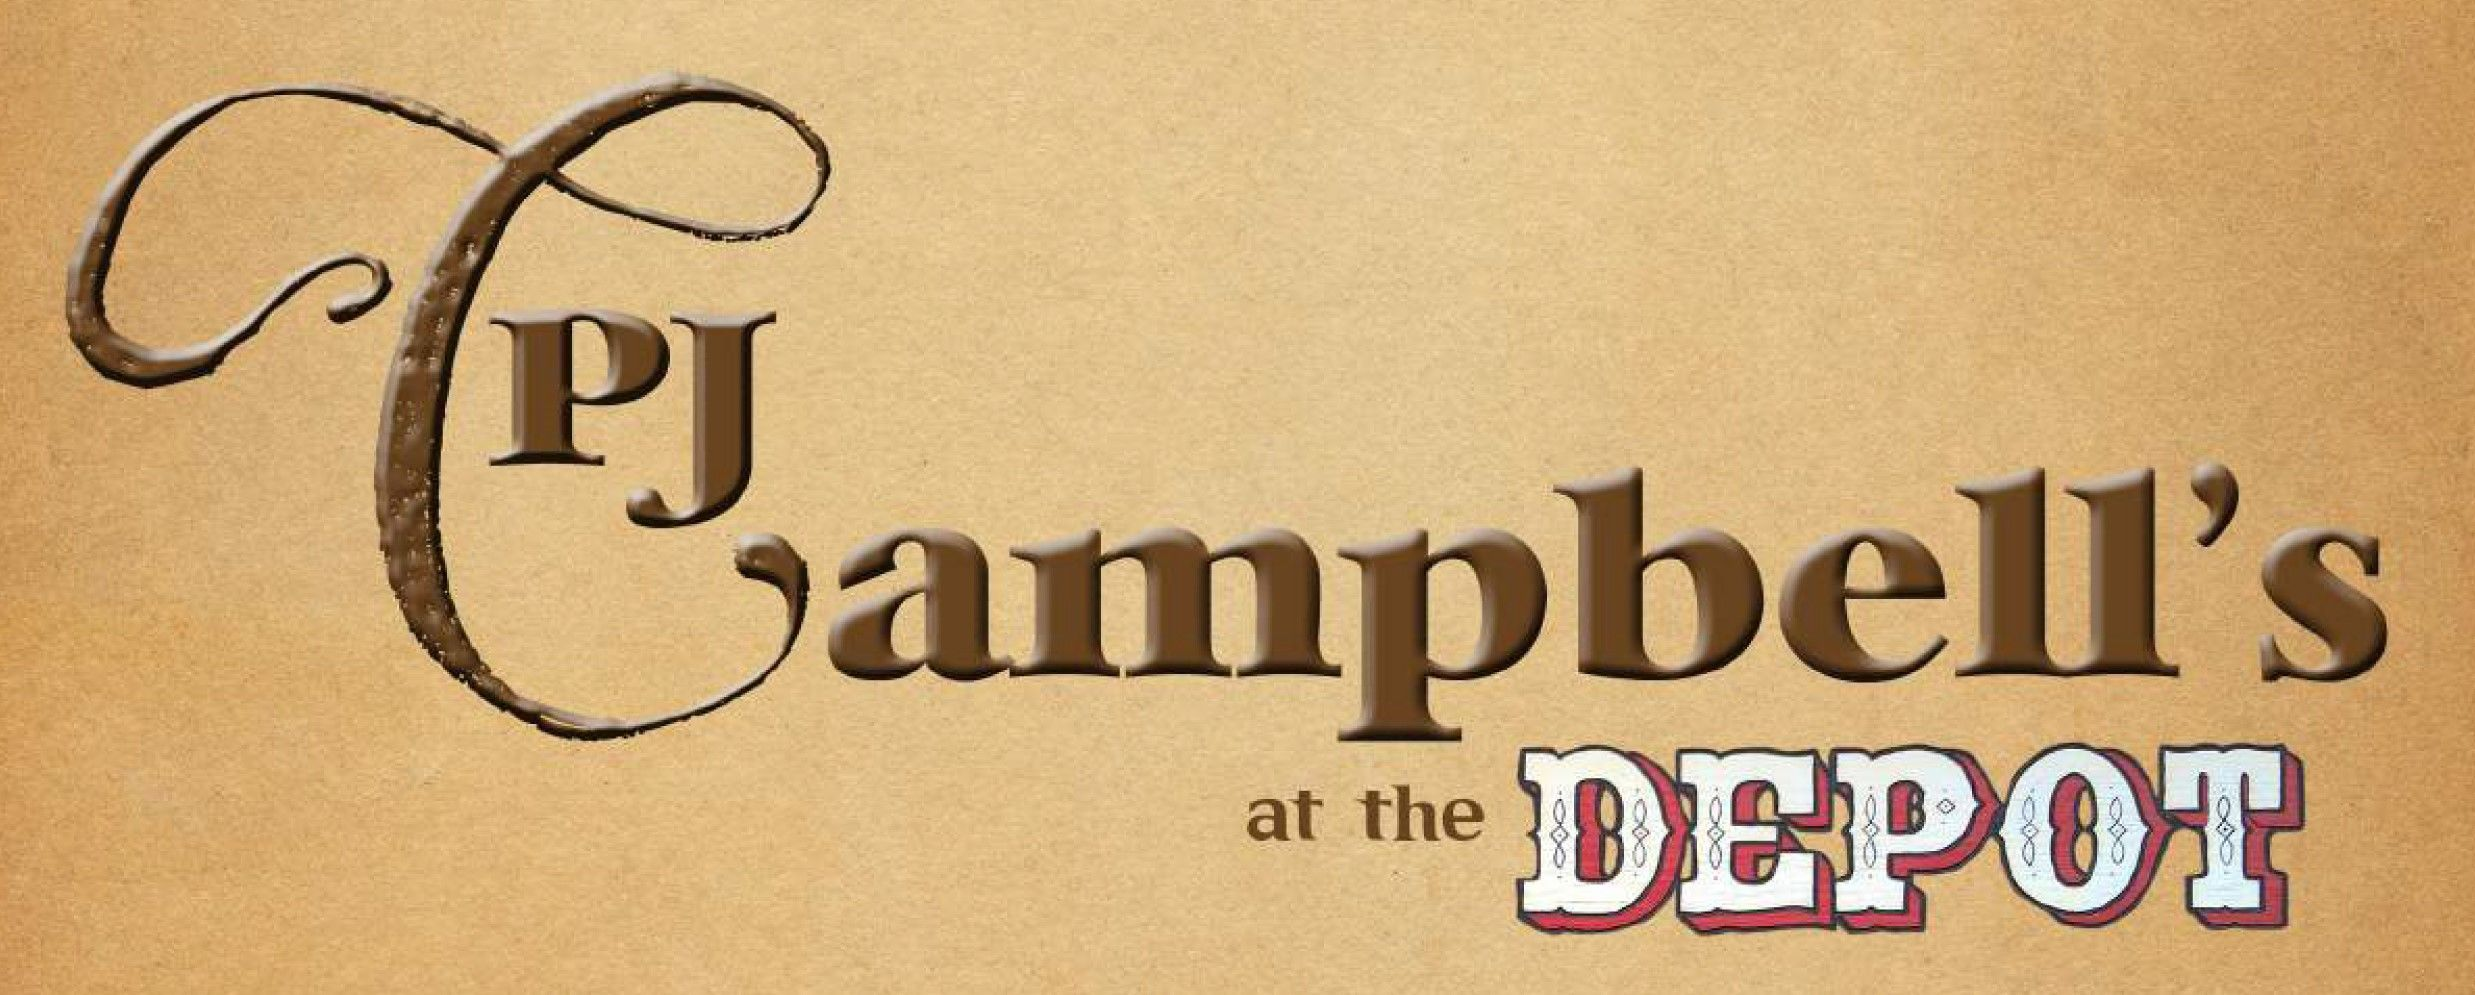 PJ Campbells at the Depot